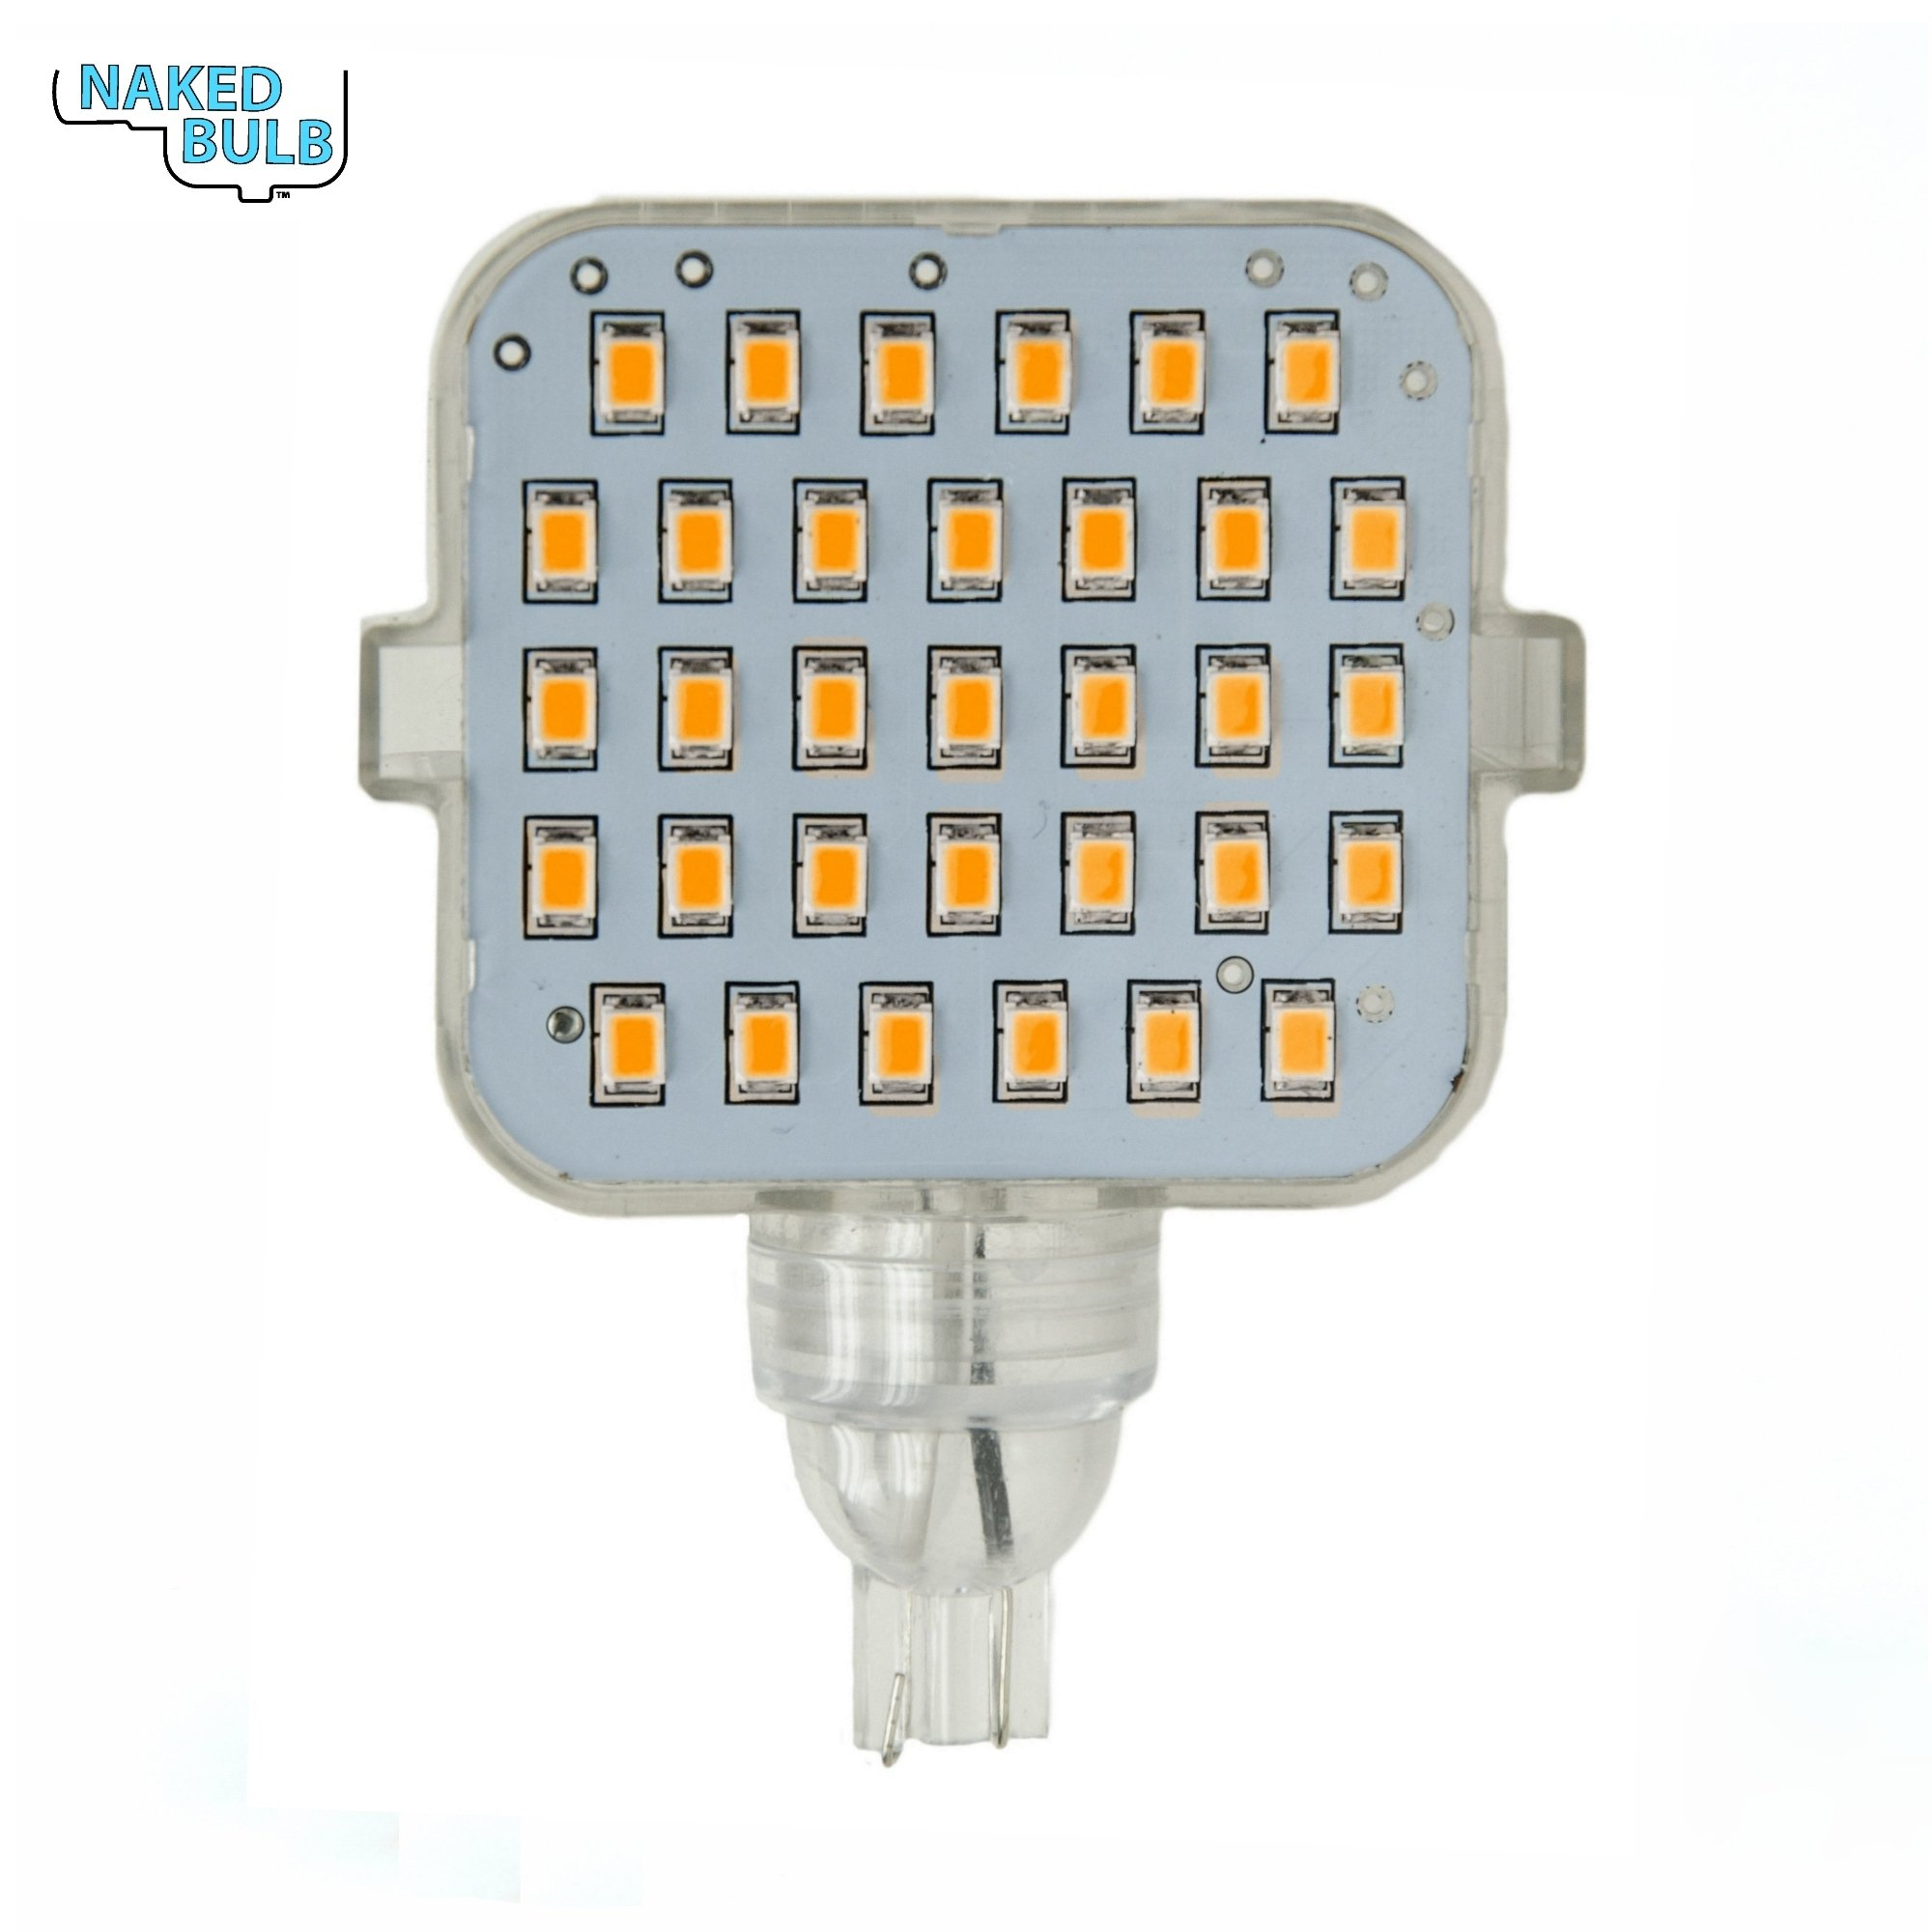 NK-921-350WW, (NAKED BULB) LED Replacement EMI Suppressed